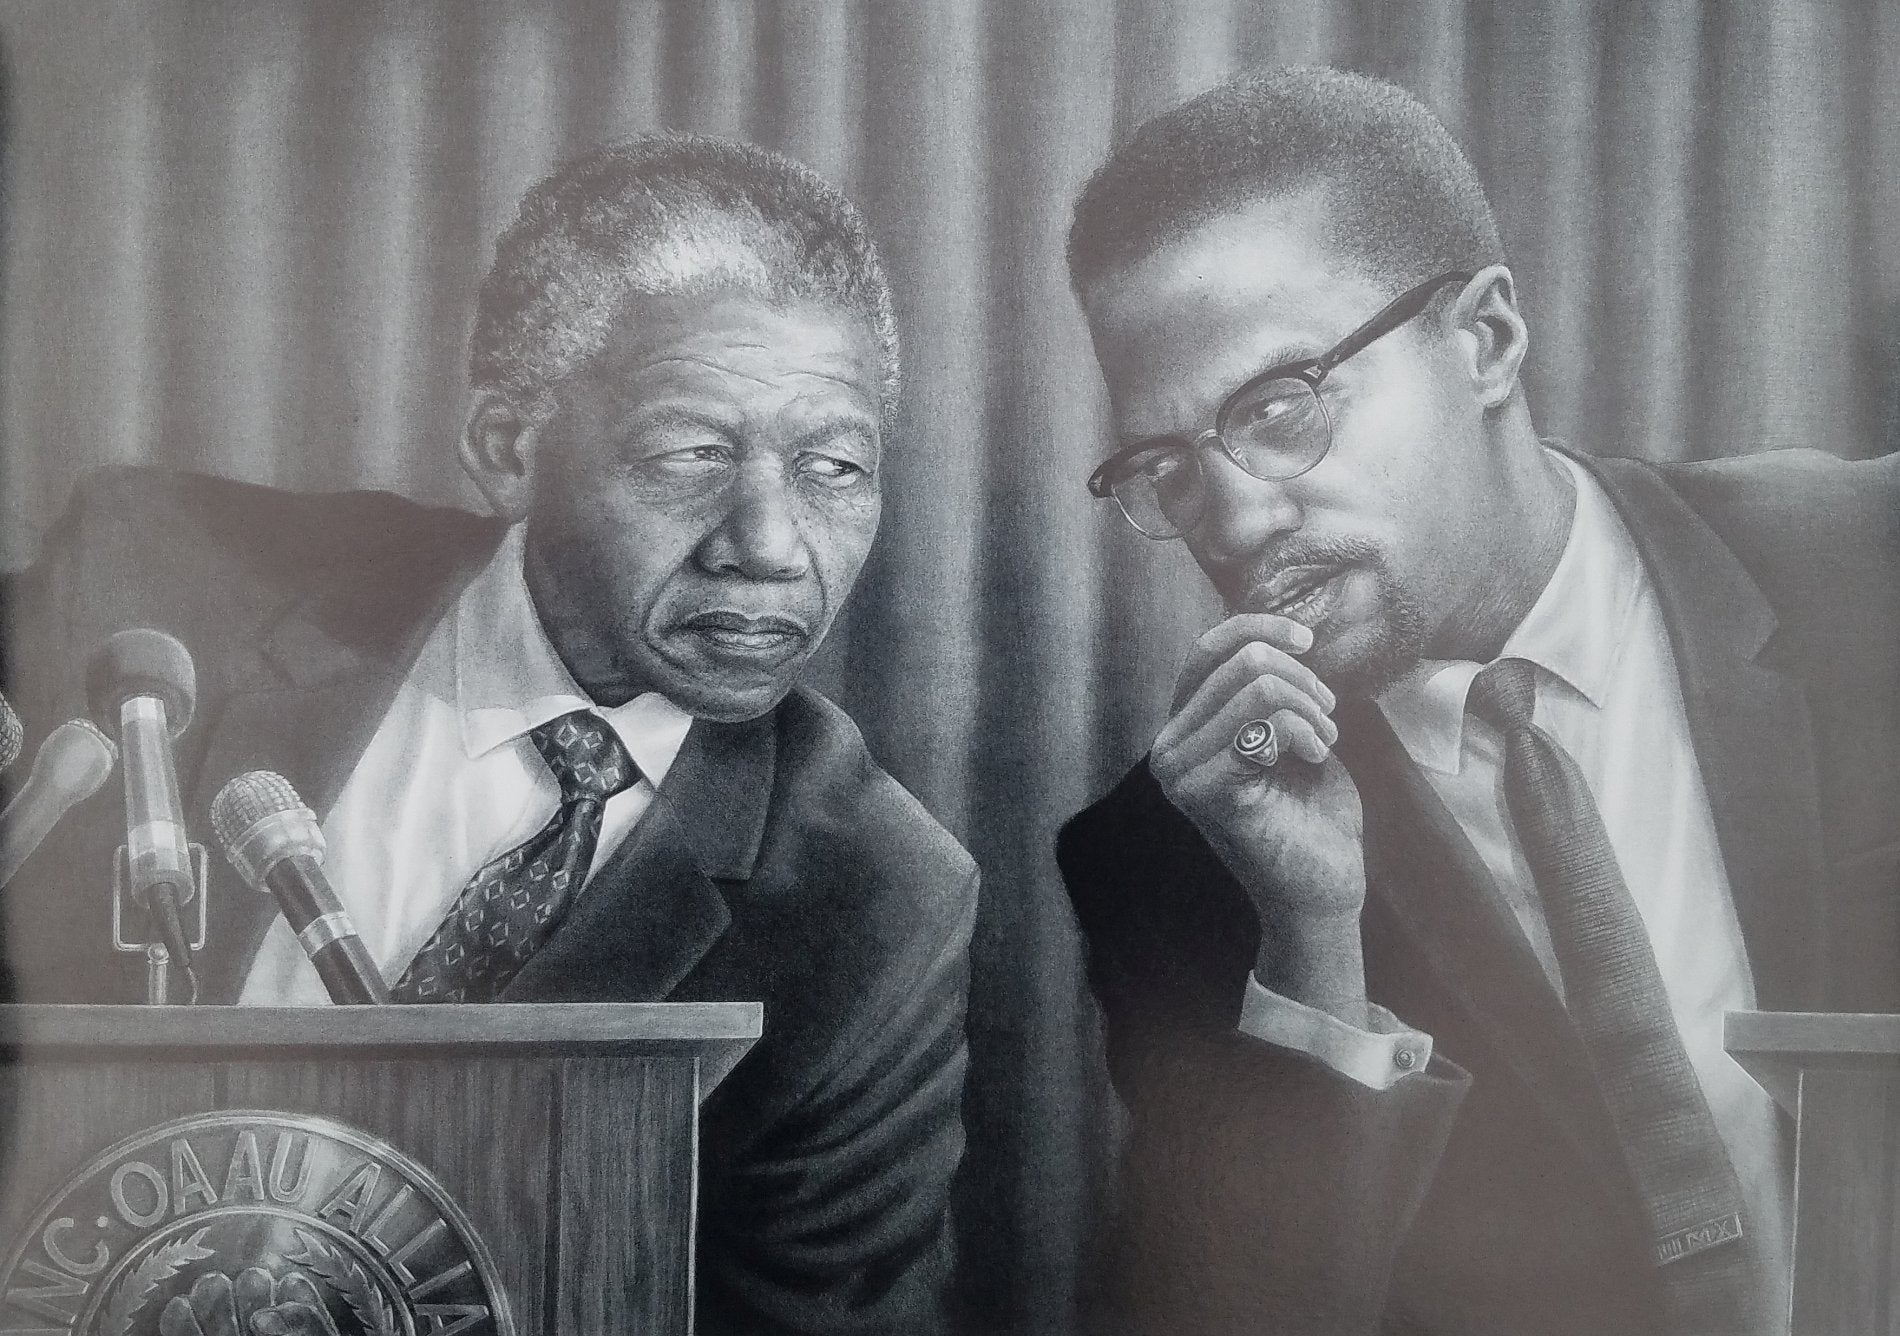 Meeting of the Minds (Malcolm X and Nelson Mandela) by Jay C. Bakari